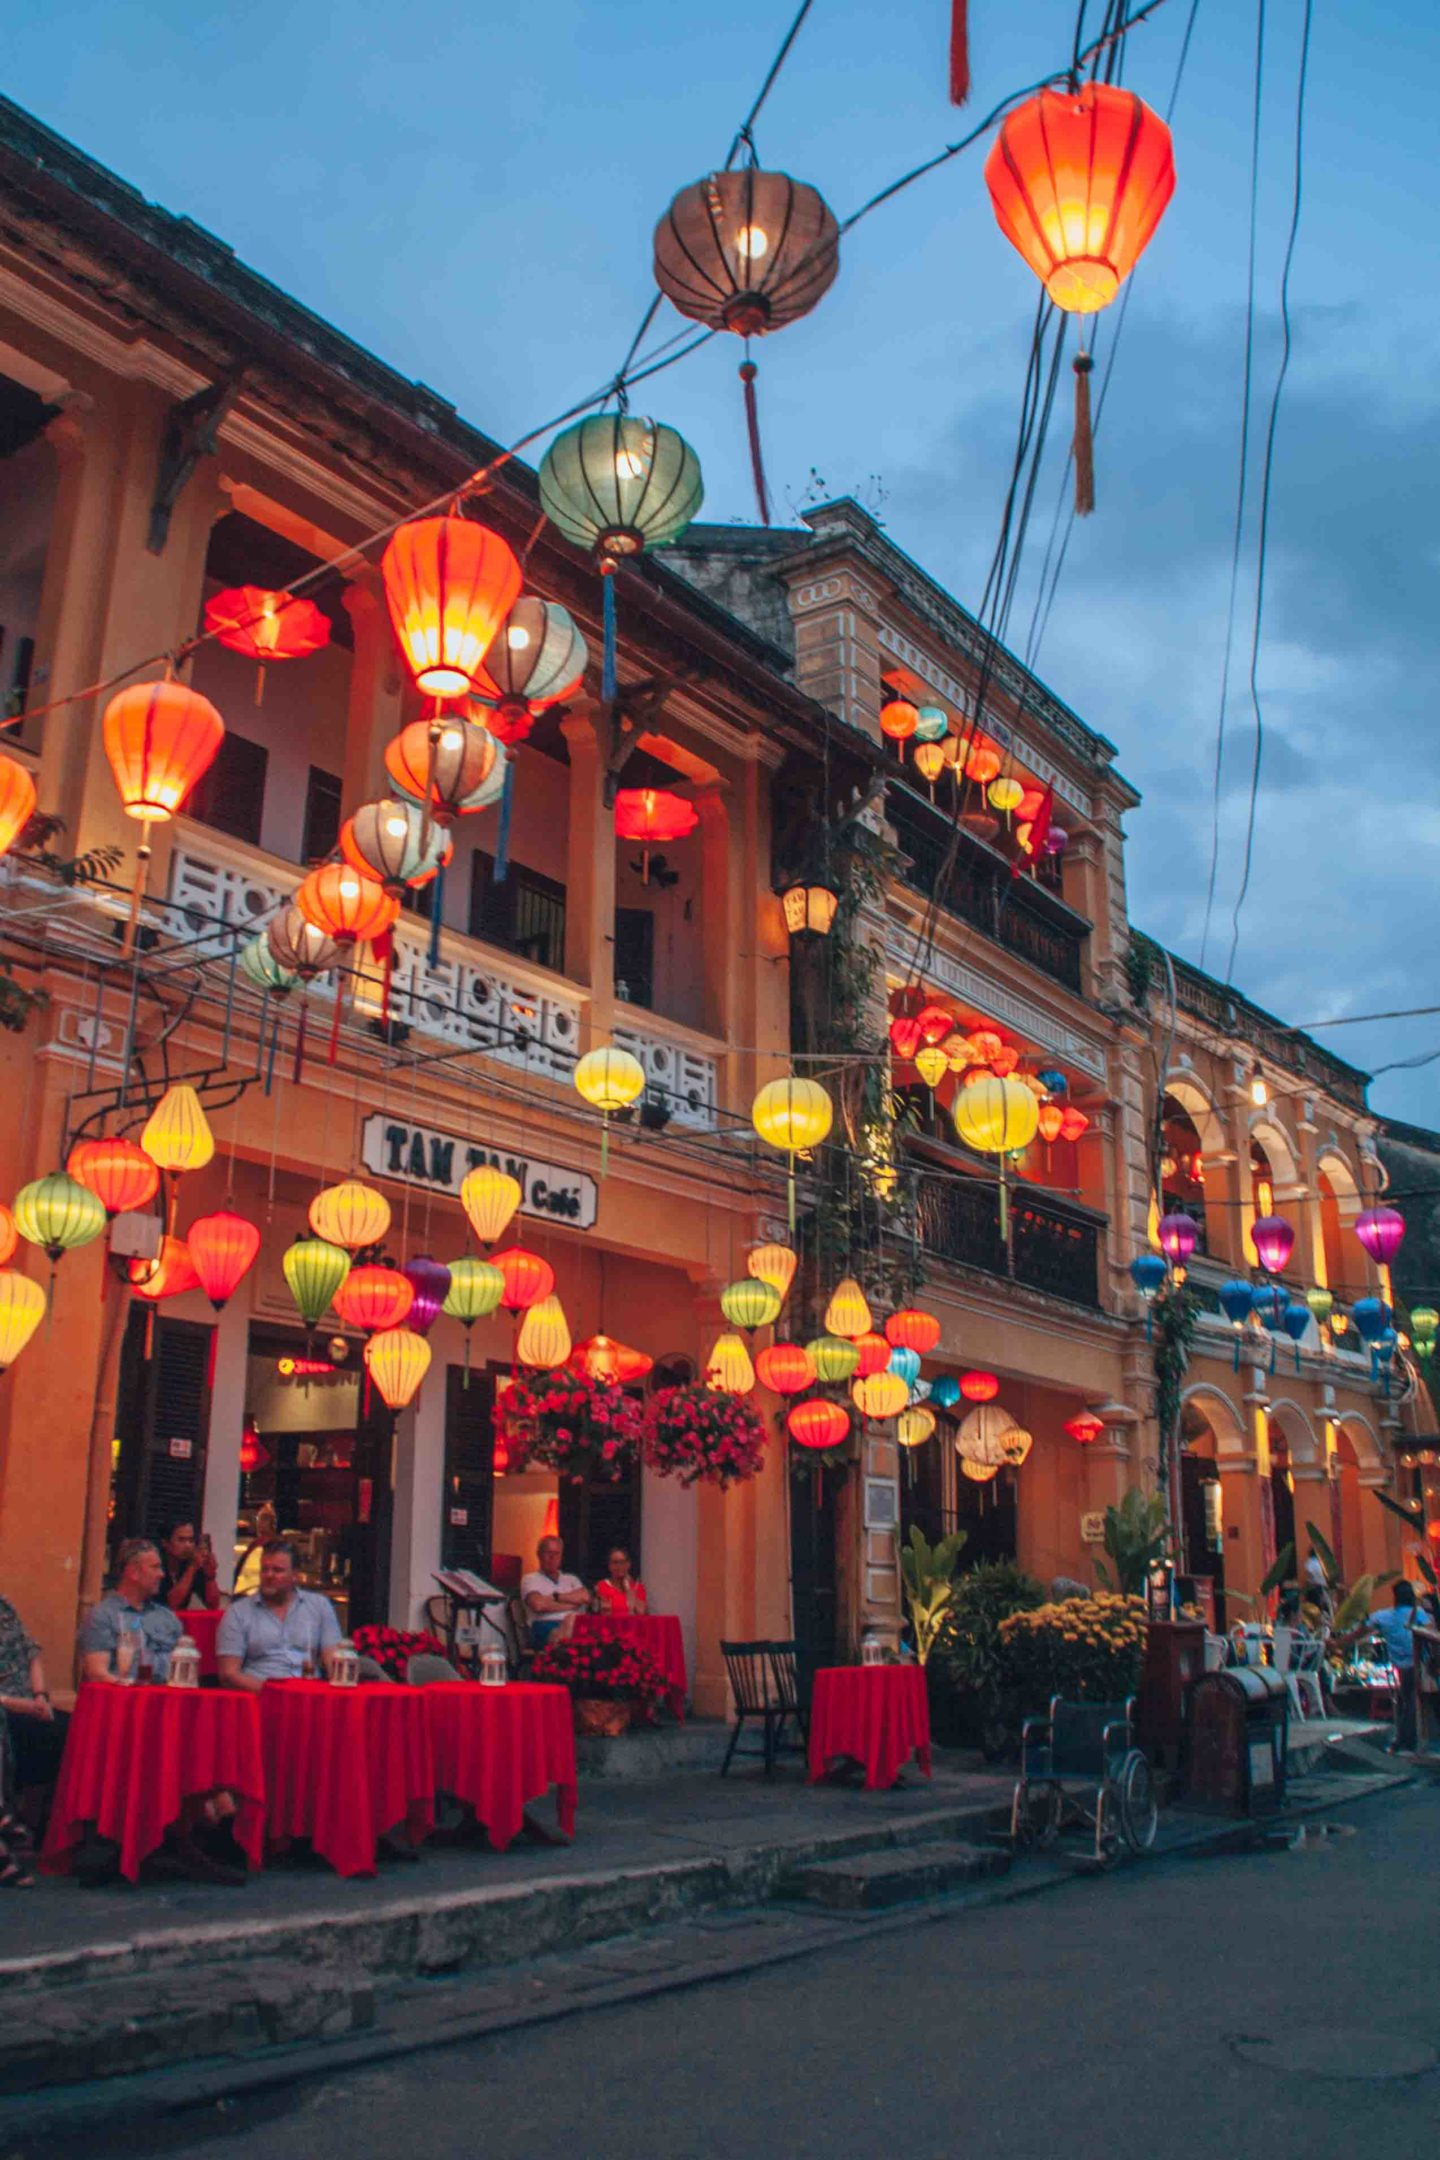 Lanterns illuminations in the streets by night in Hoi An